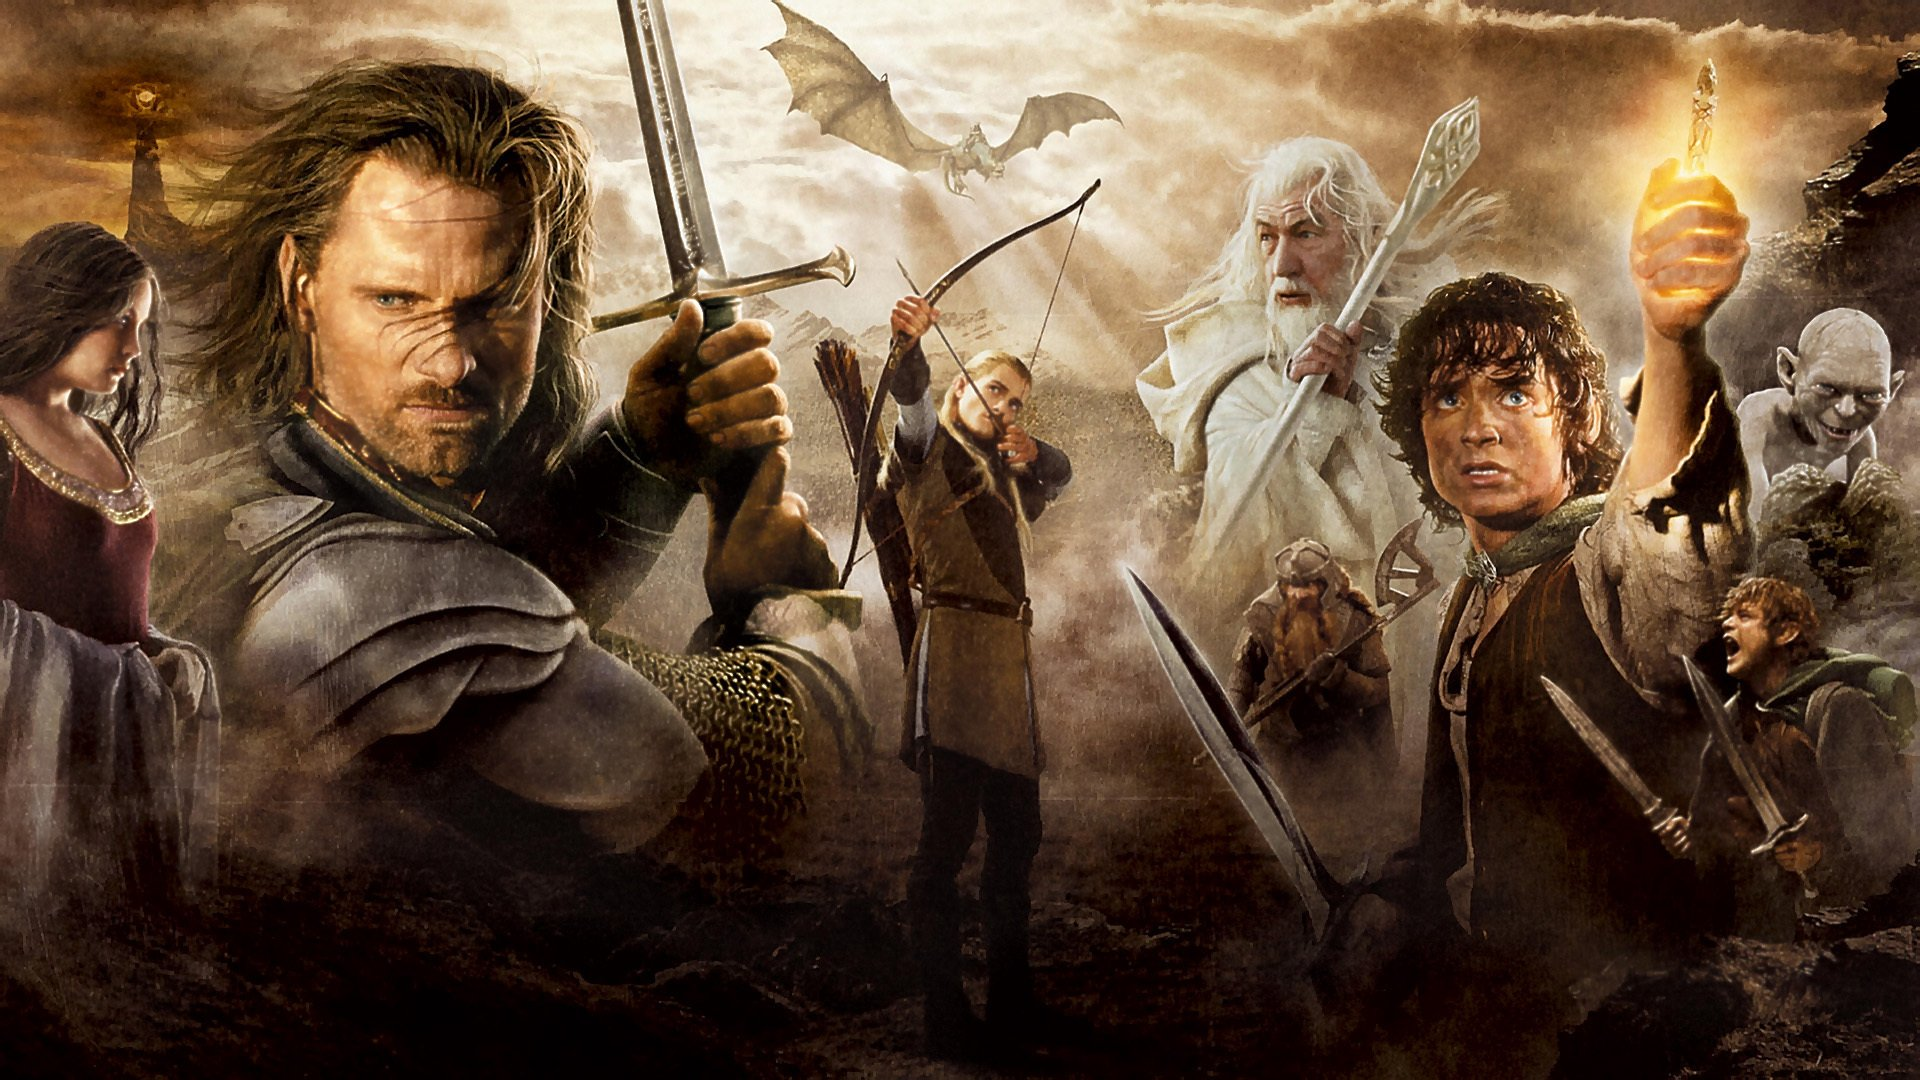 High Quality Lord Of The Rings Wallpaper Full HD Pictures 1920x1080